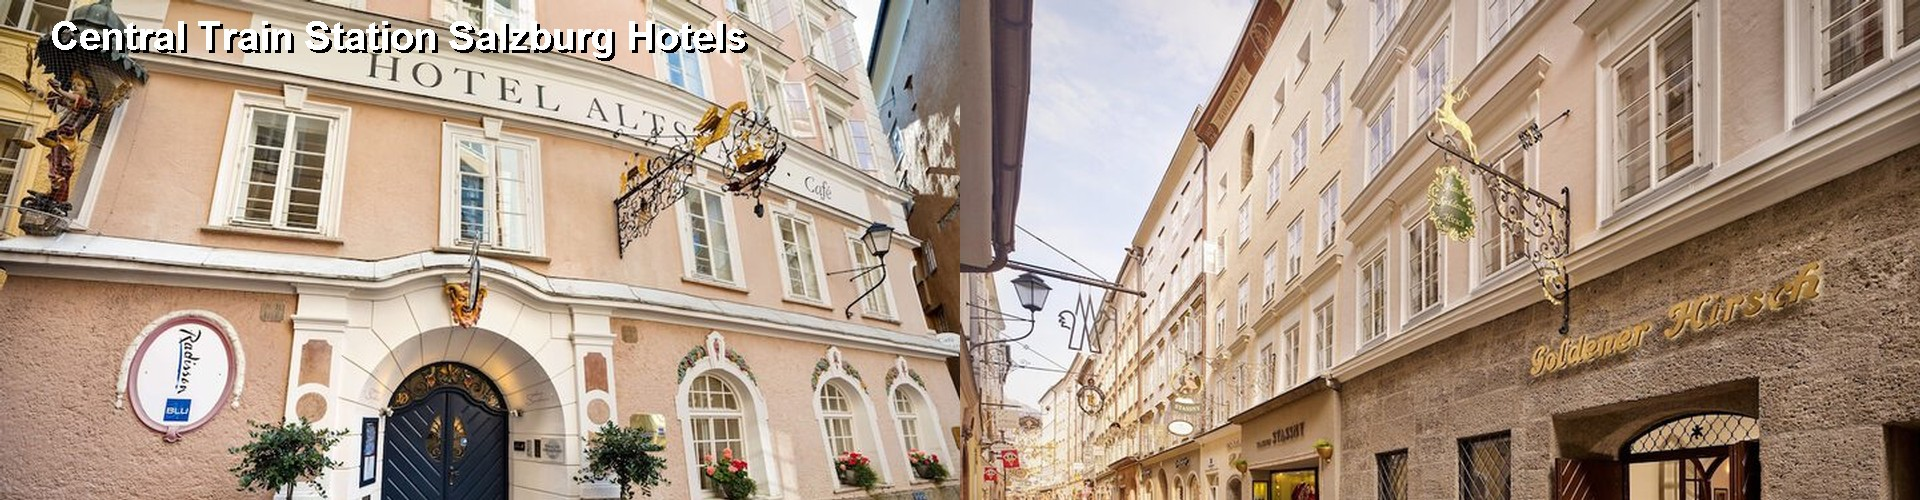 5 Best Hotels near Central Train Station Salzburg